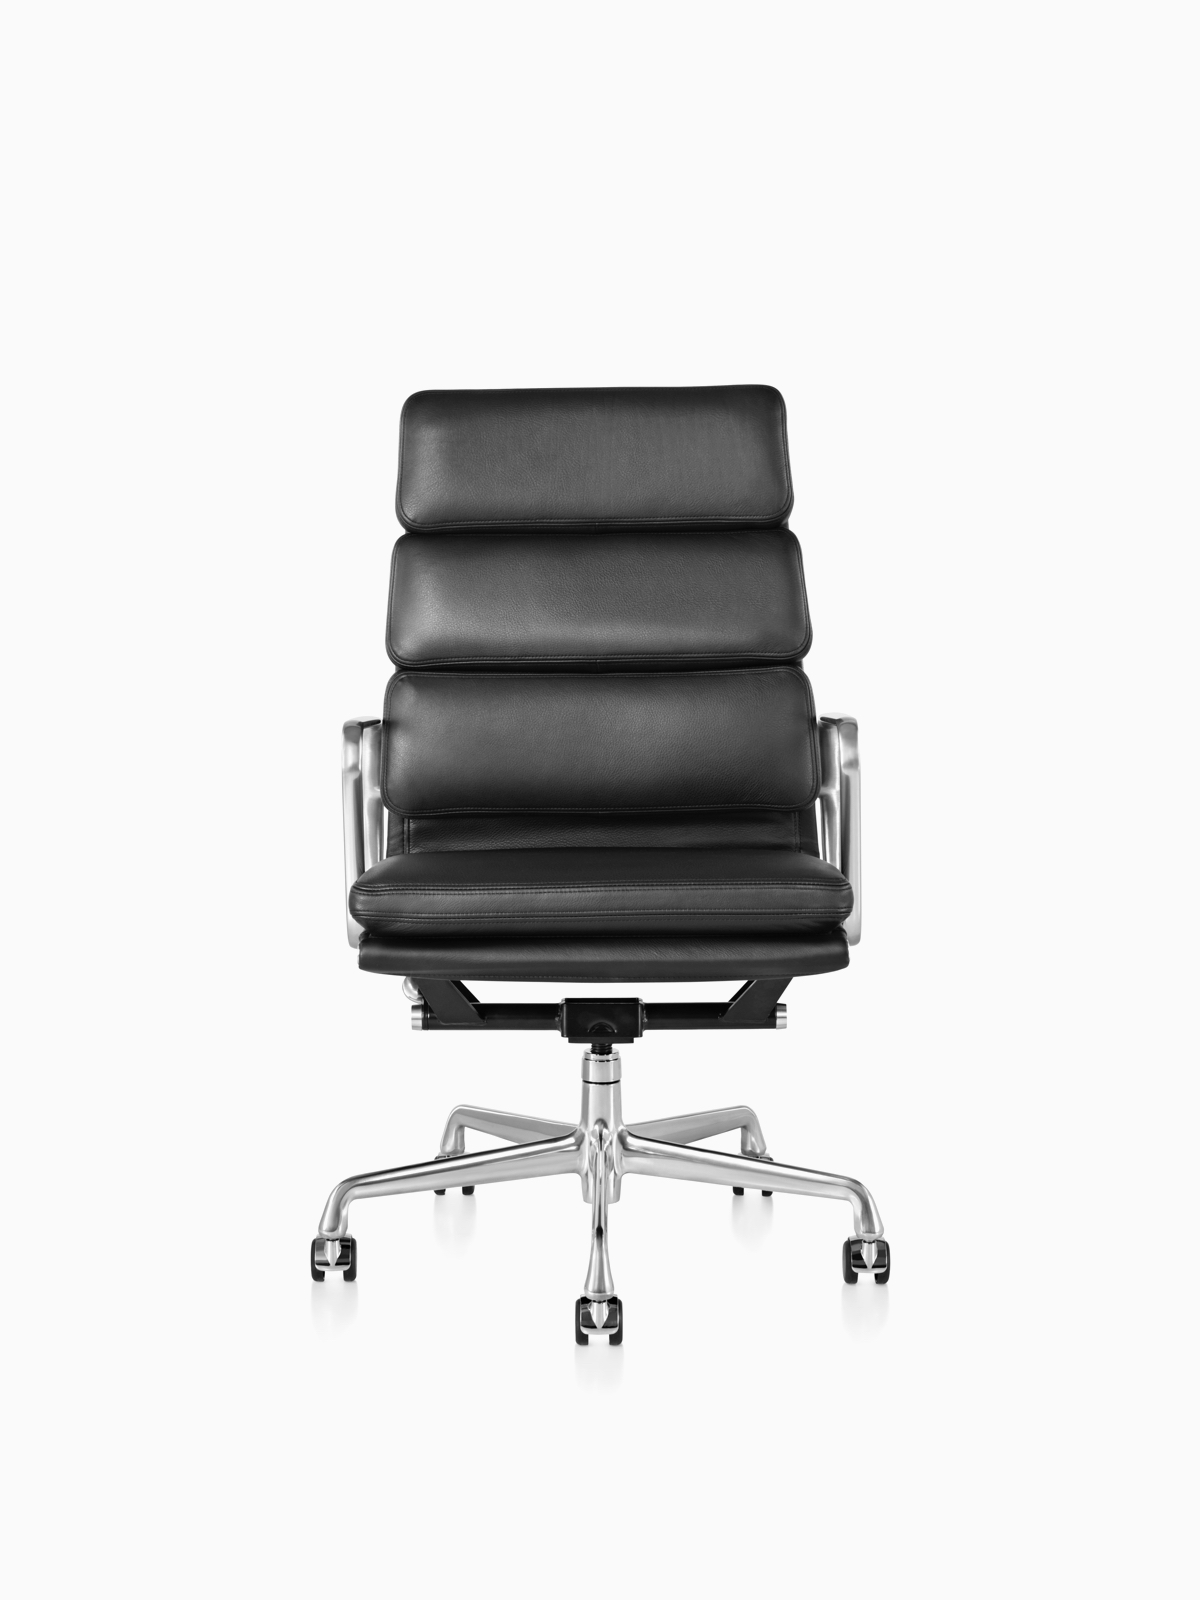 Eames Soft Pad Chairs